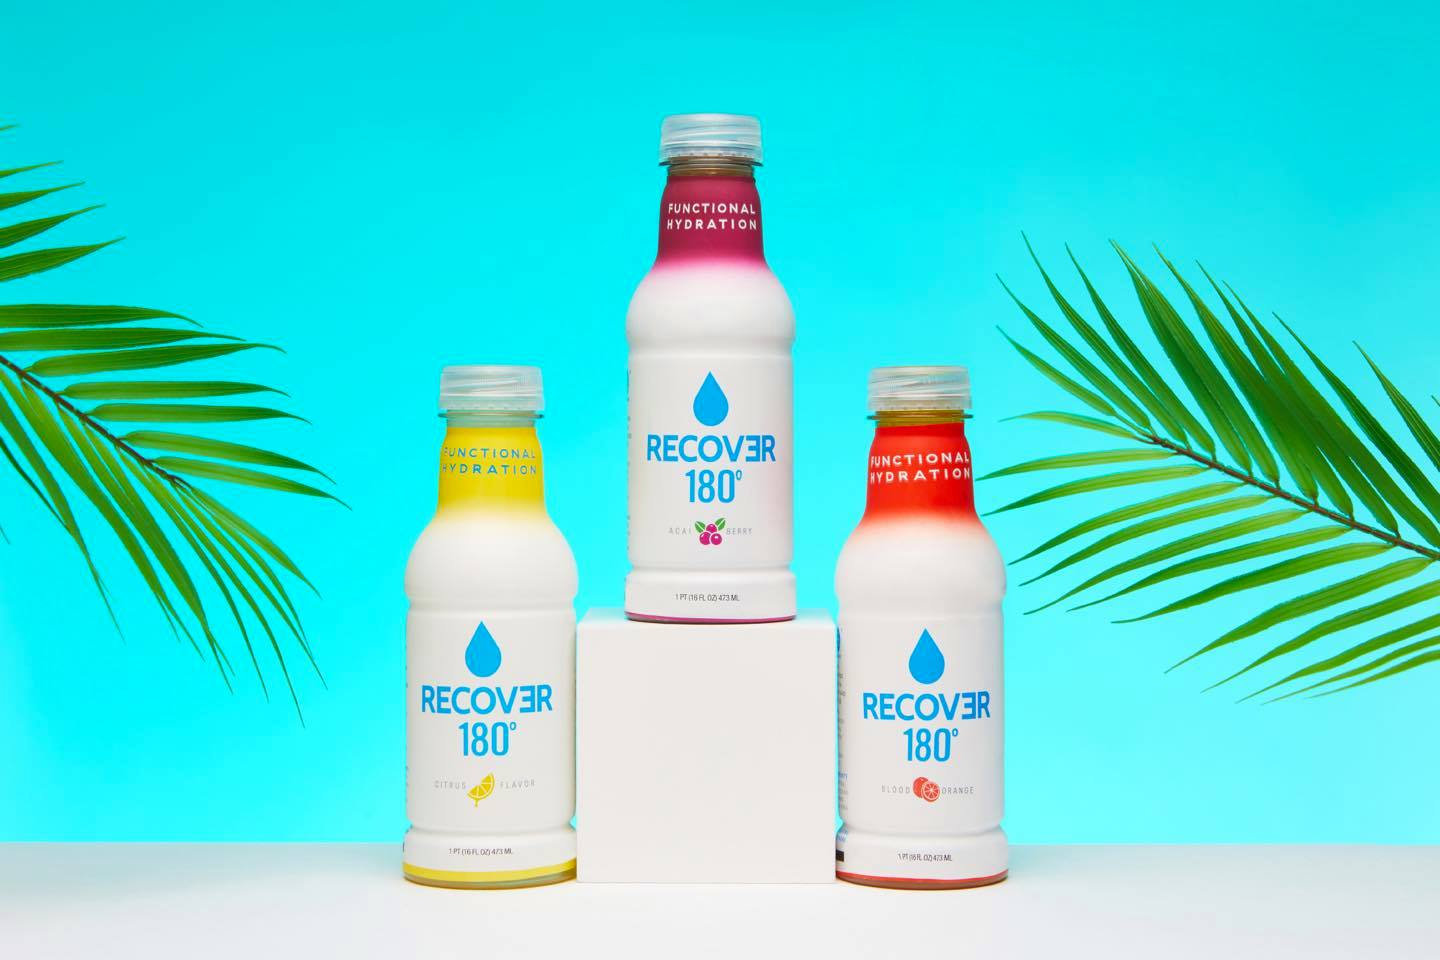 Recover 180 - Functional Hydration Drink